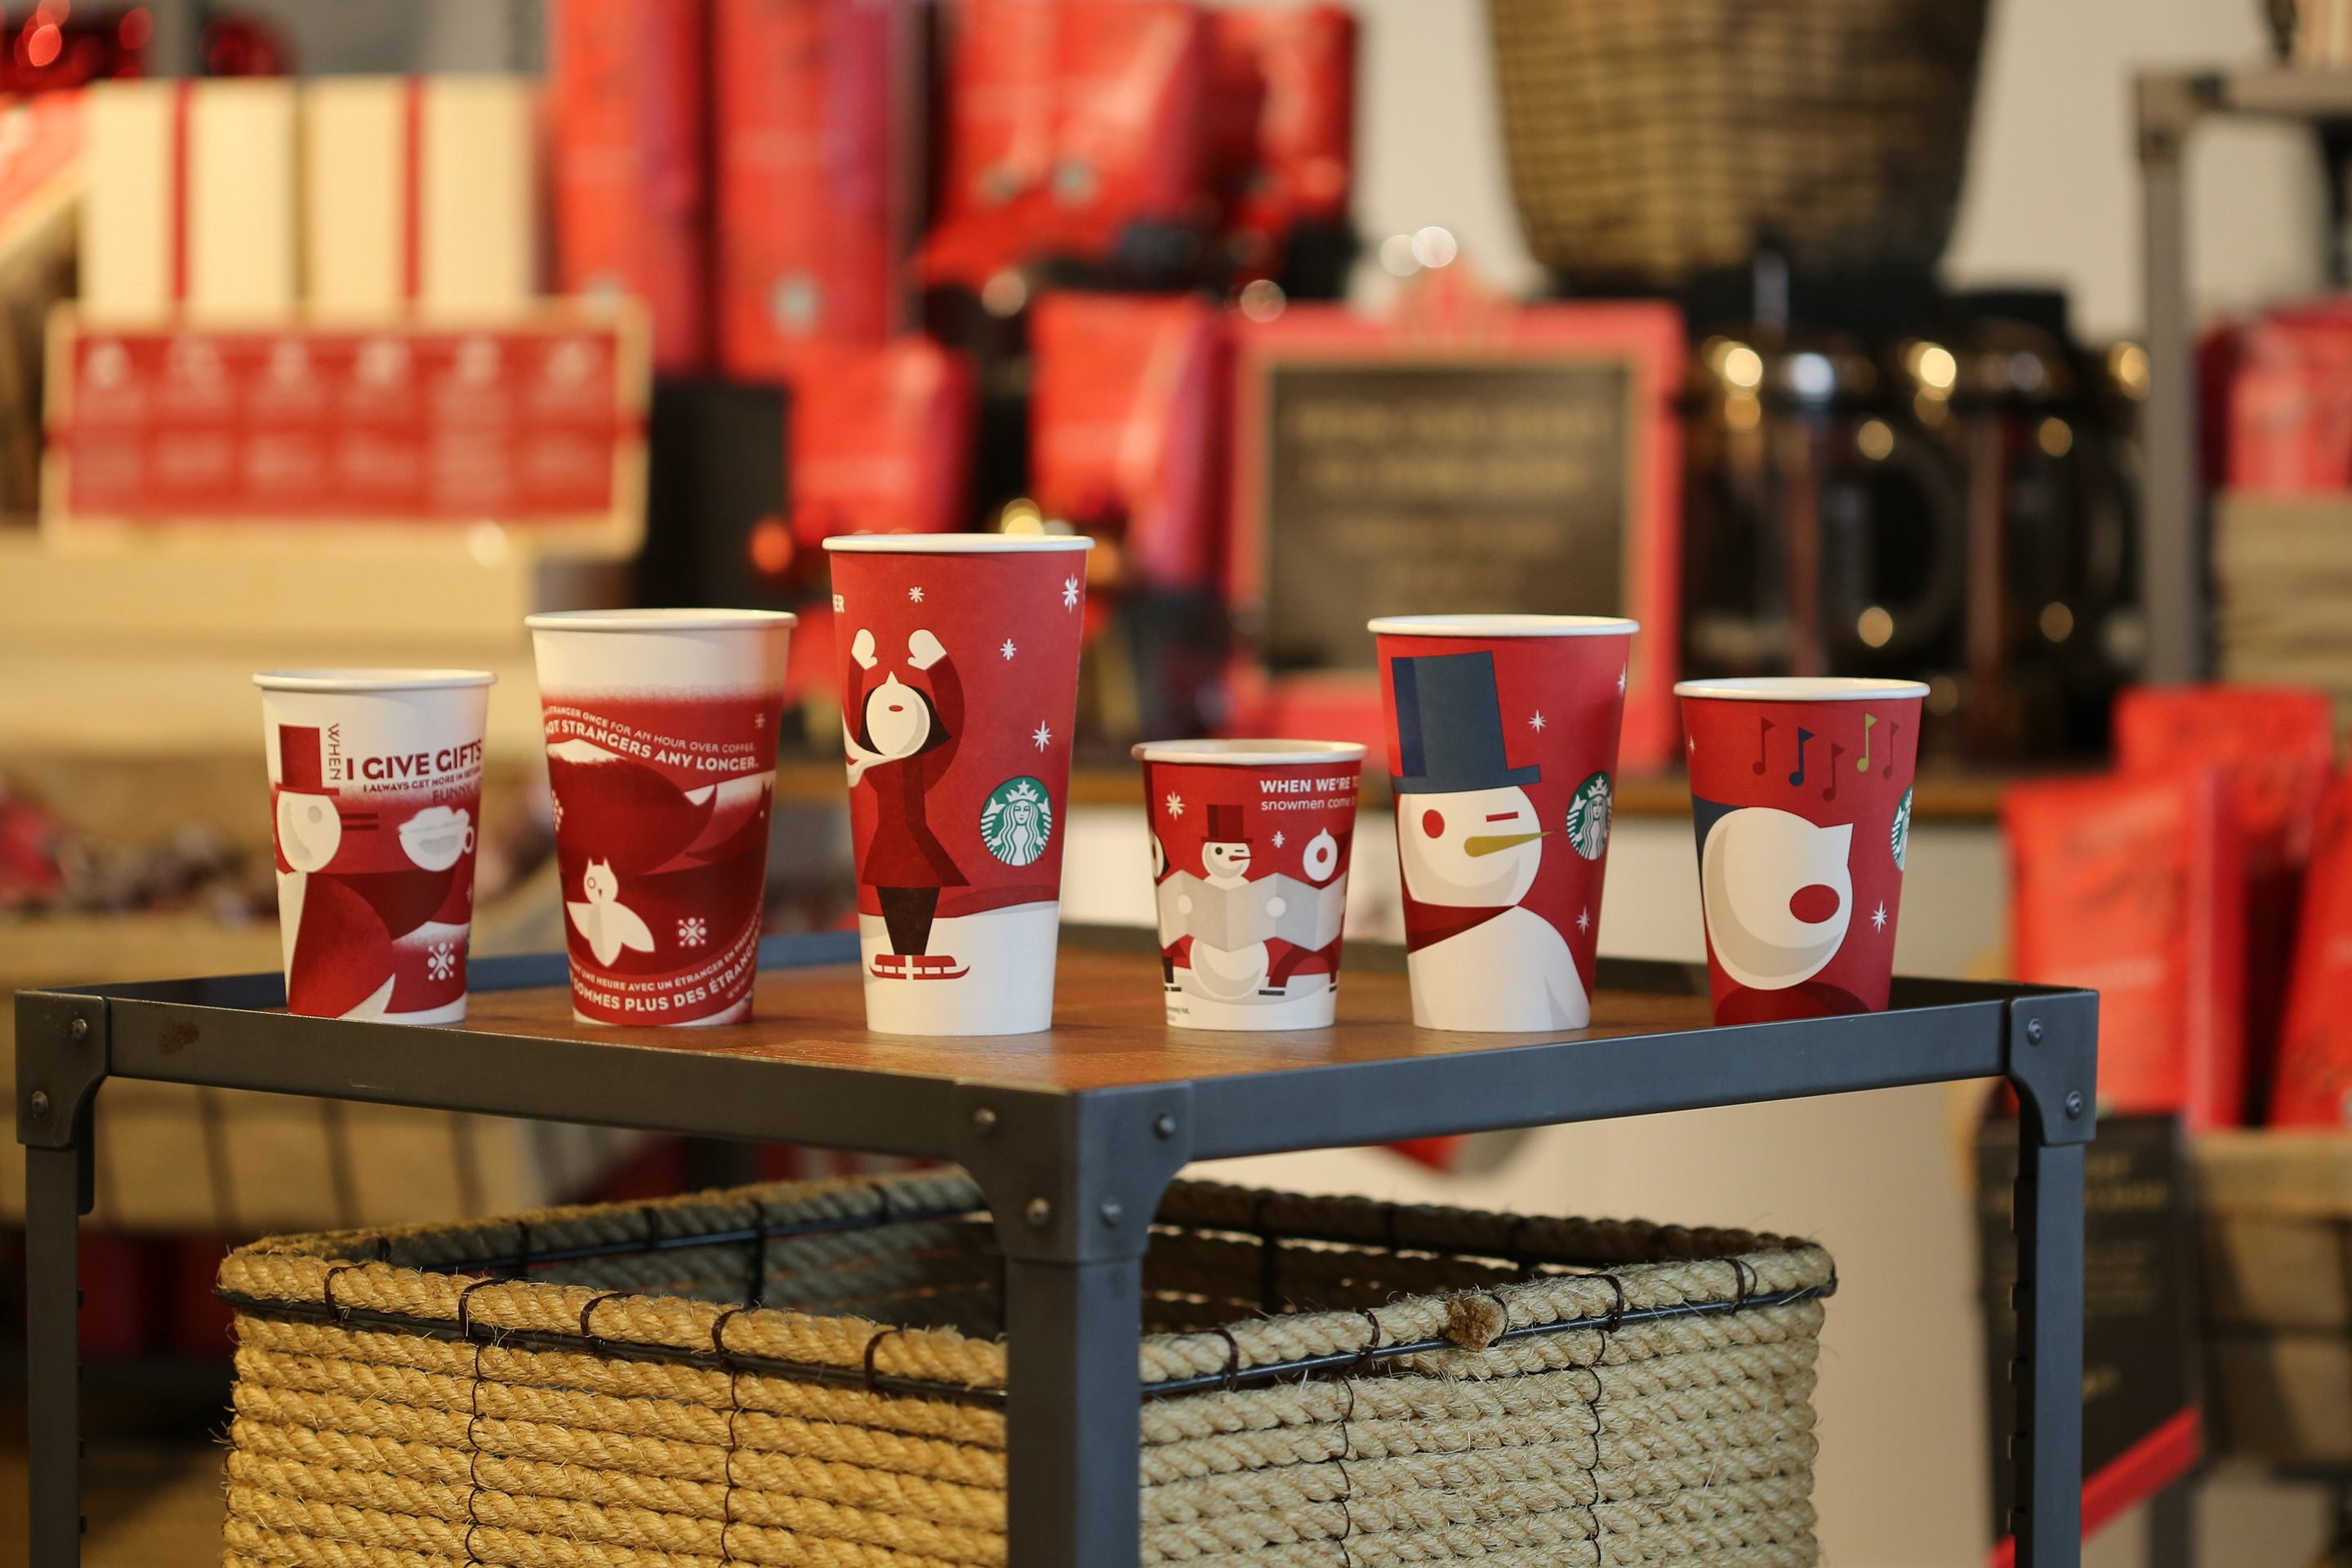 The War on Christmas Cups